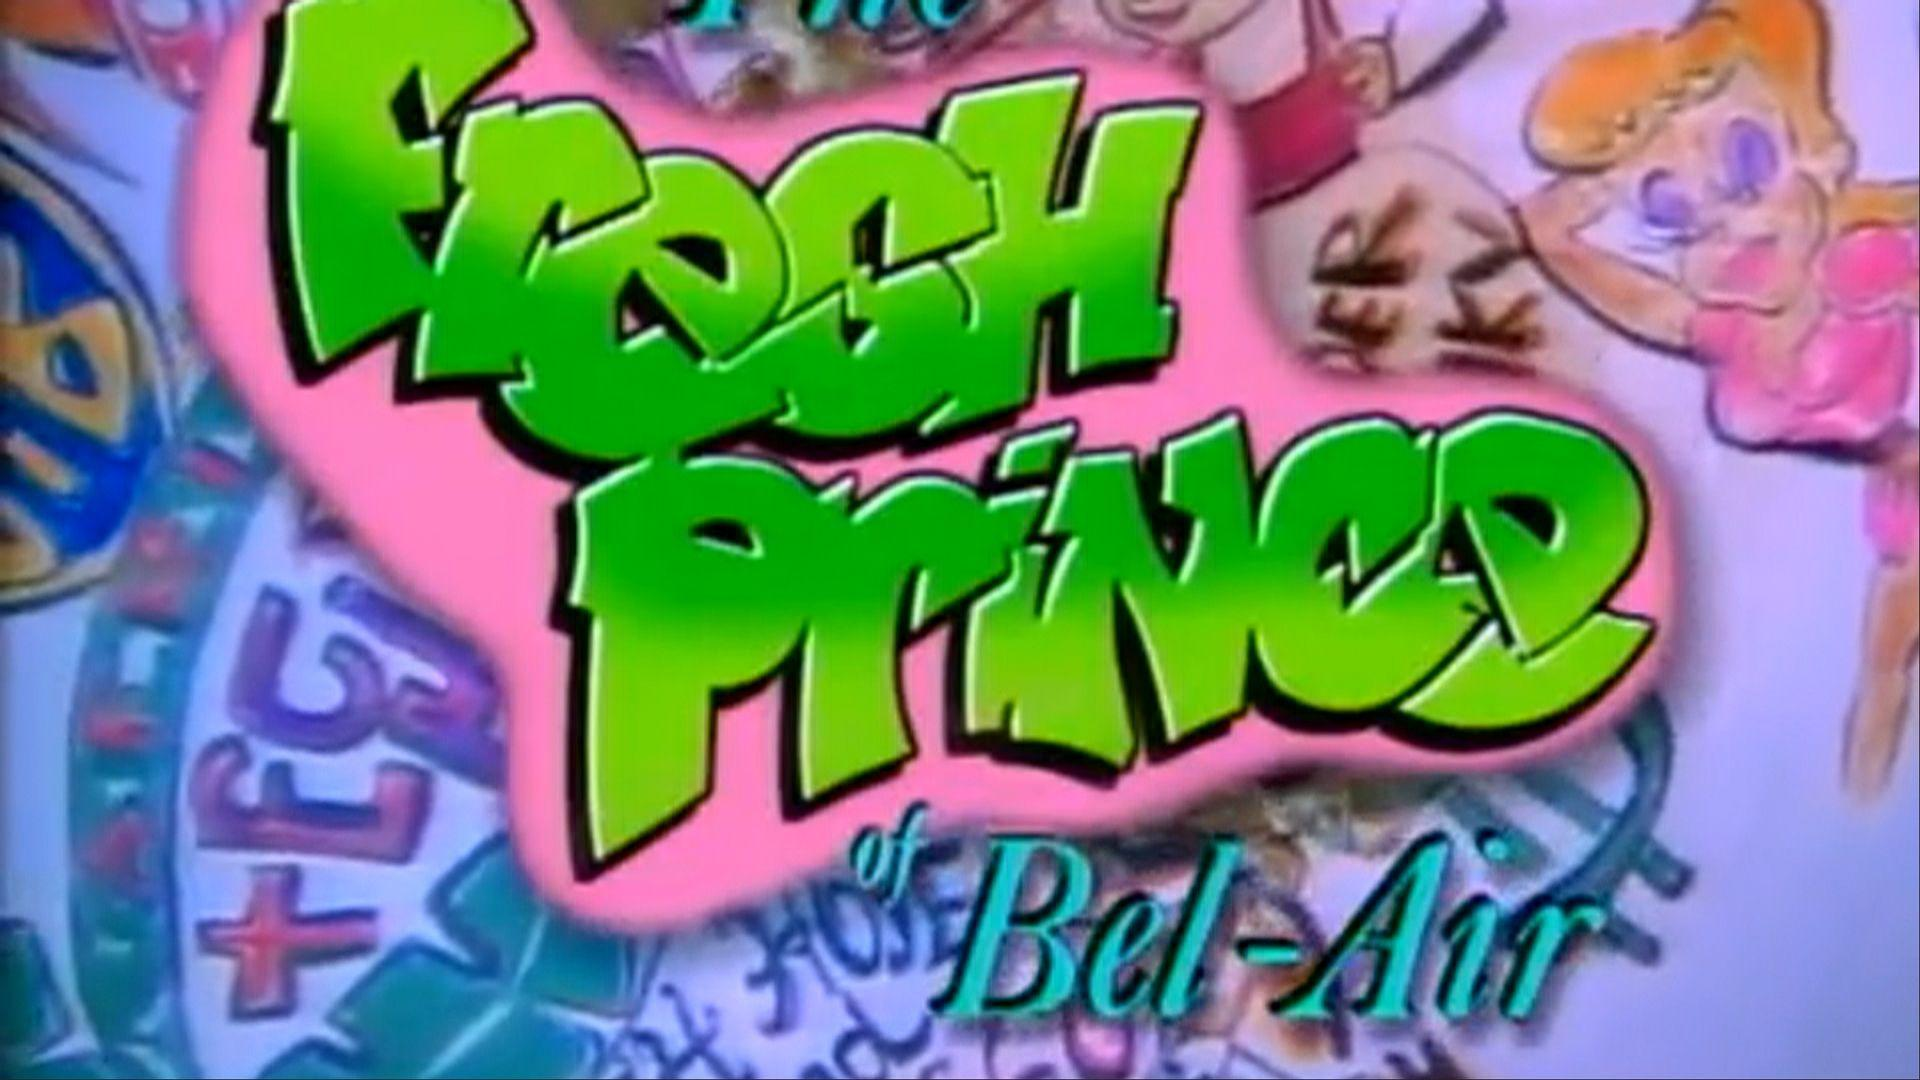 Fresh Prince of Bel Air' reboot being developed by Will Smith